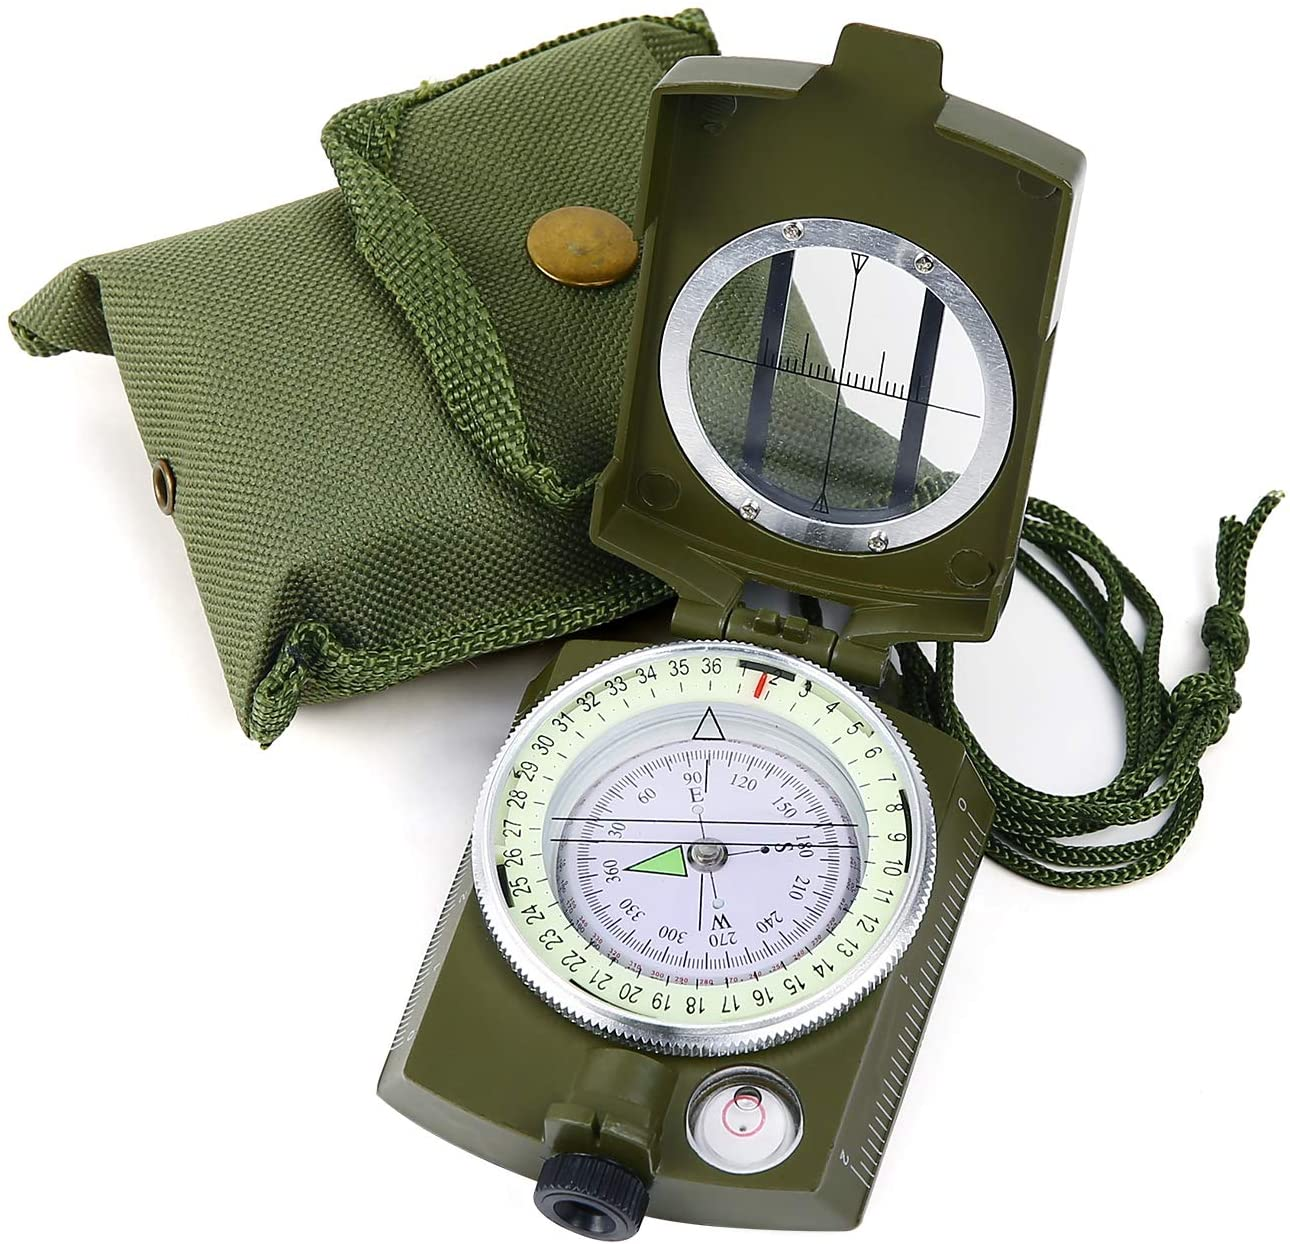 Sportneer Military Lensatic Sighting Compass with Carrying Bag